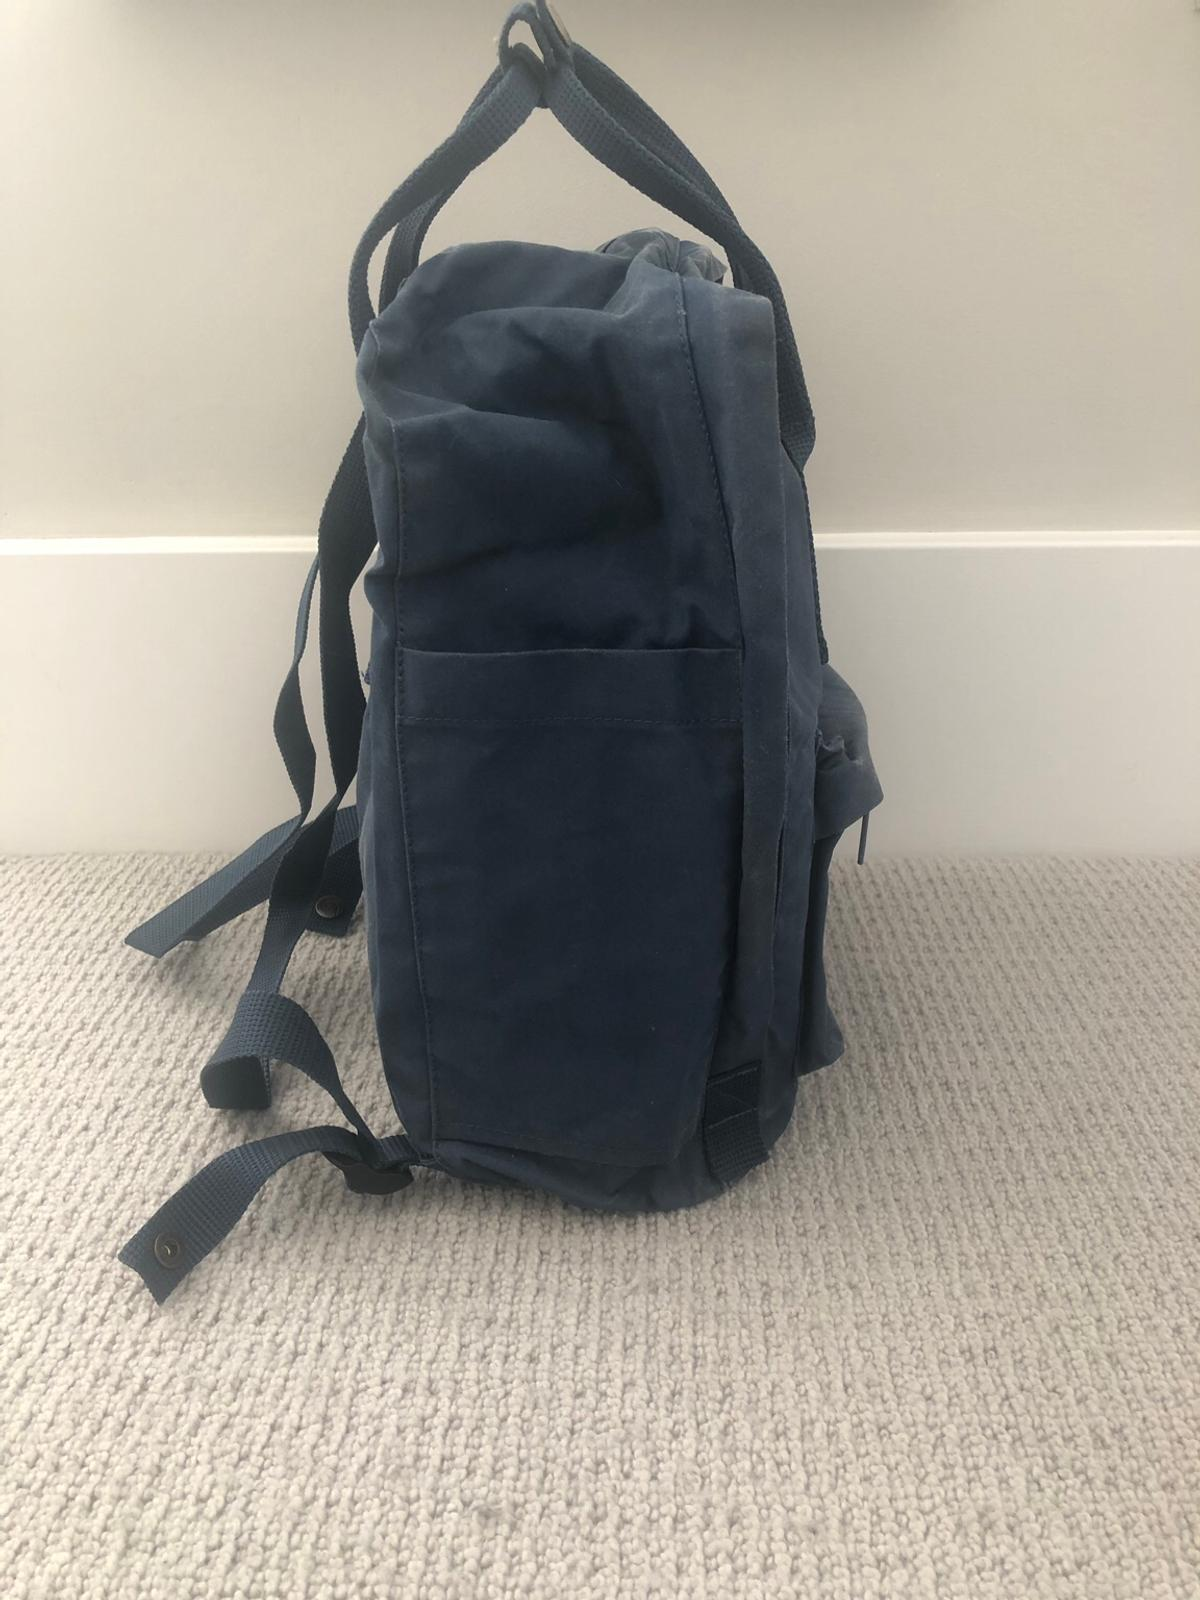 Fjalleaven Kanken backpack in SW17 Wandsworth for £20 00 for sale